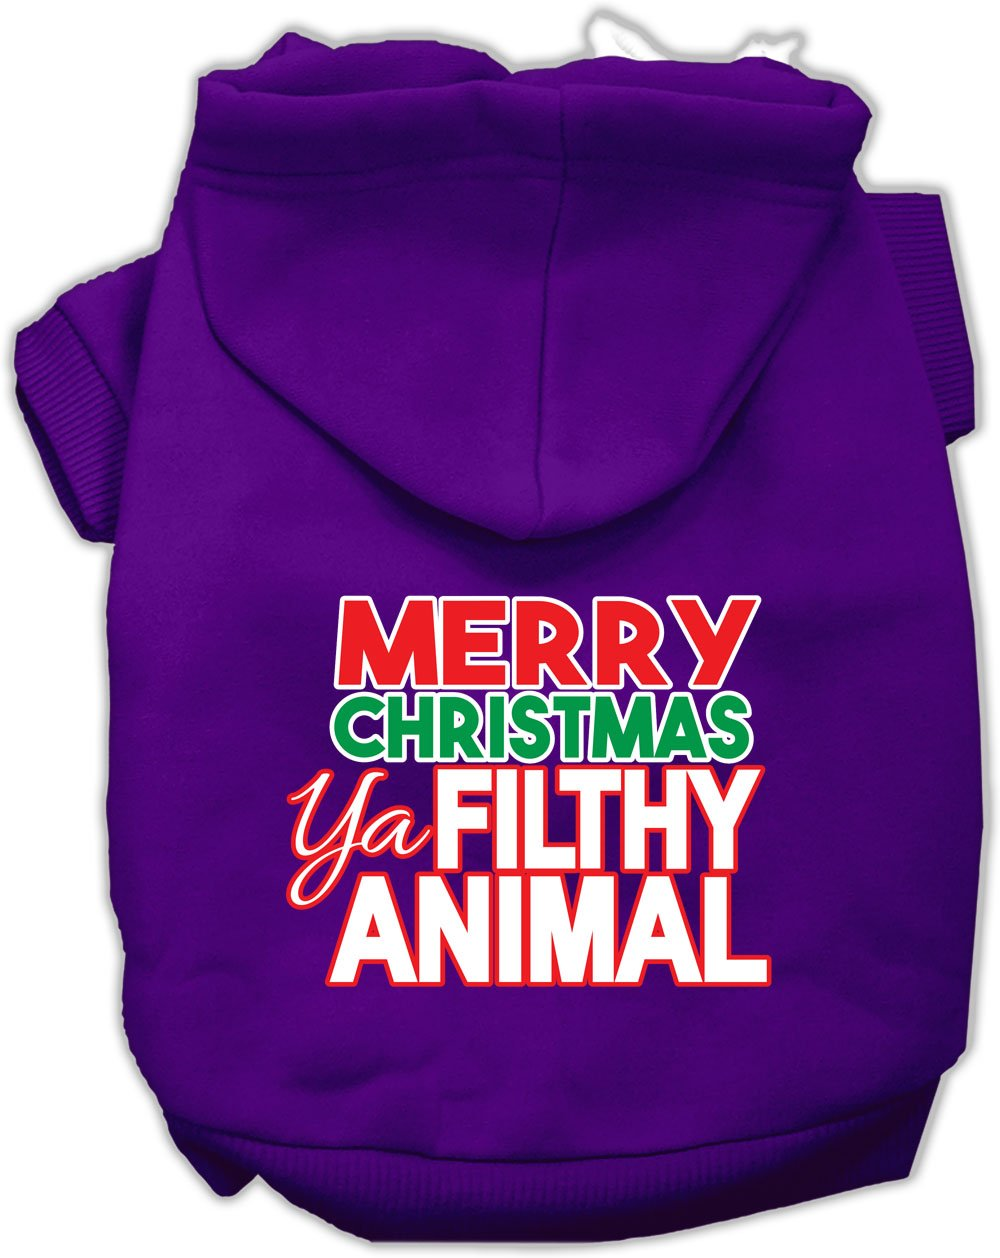 Mirage Pet Products 62-148 XXLPR Ya Filthy Animal Screen Print Purple Pet Hoodie, XX-Large